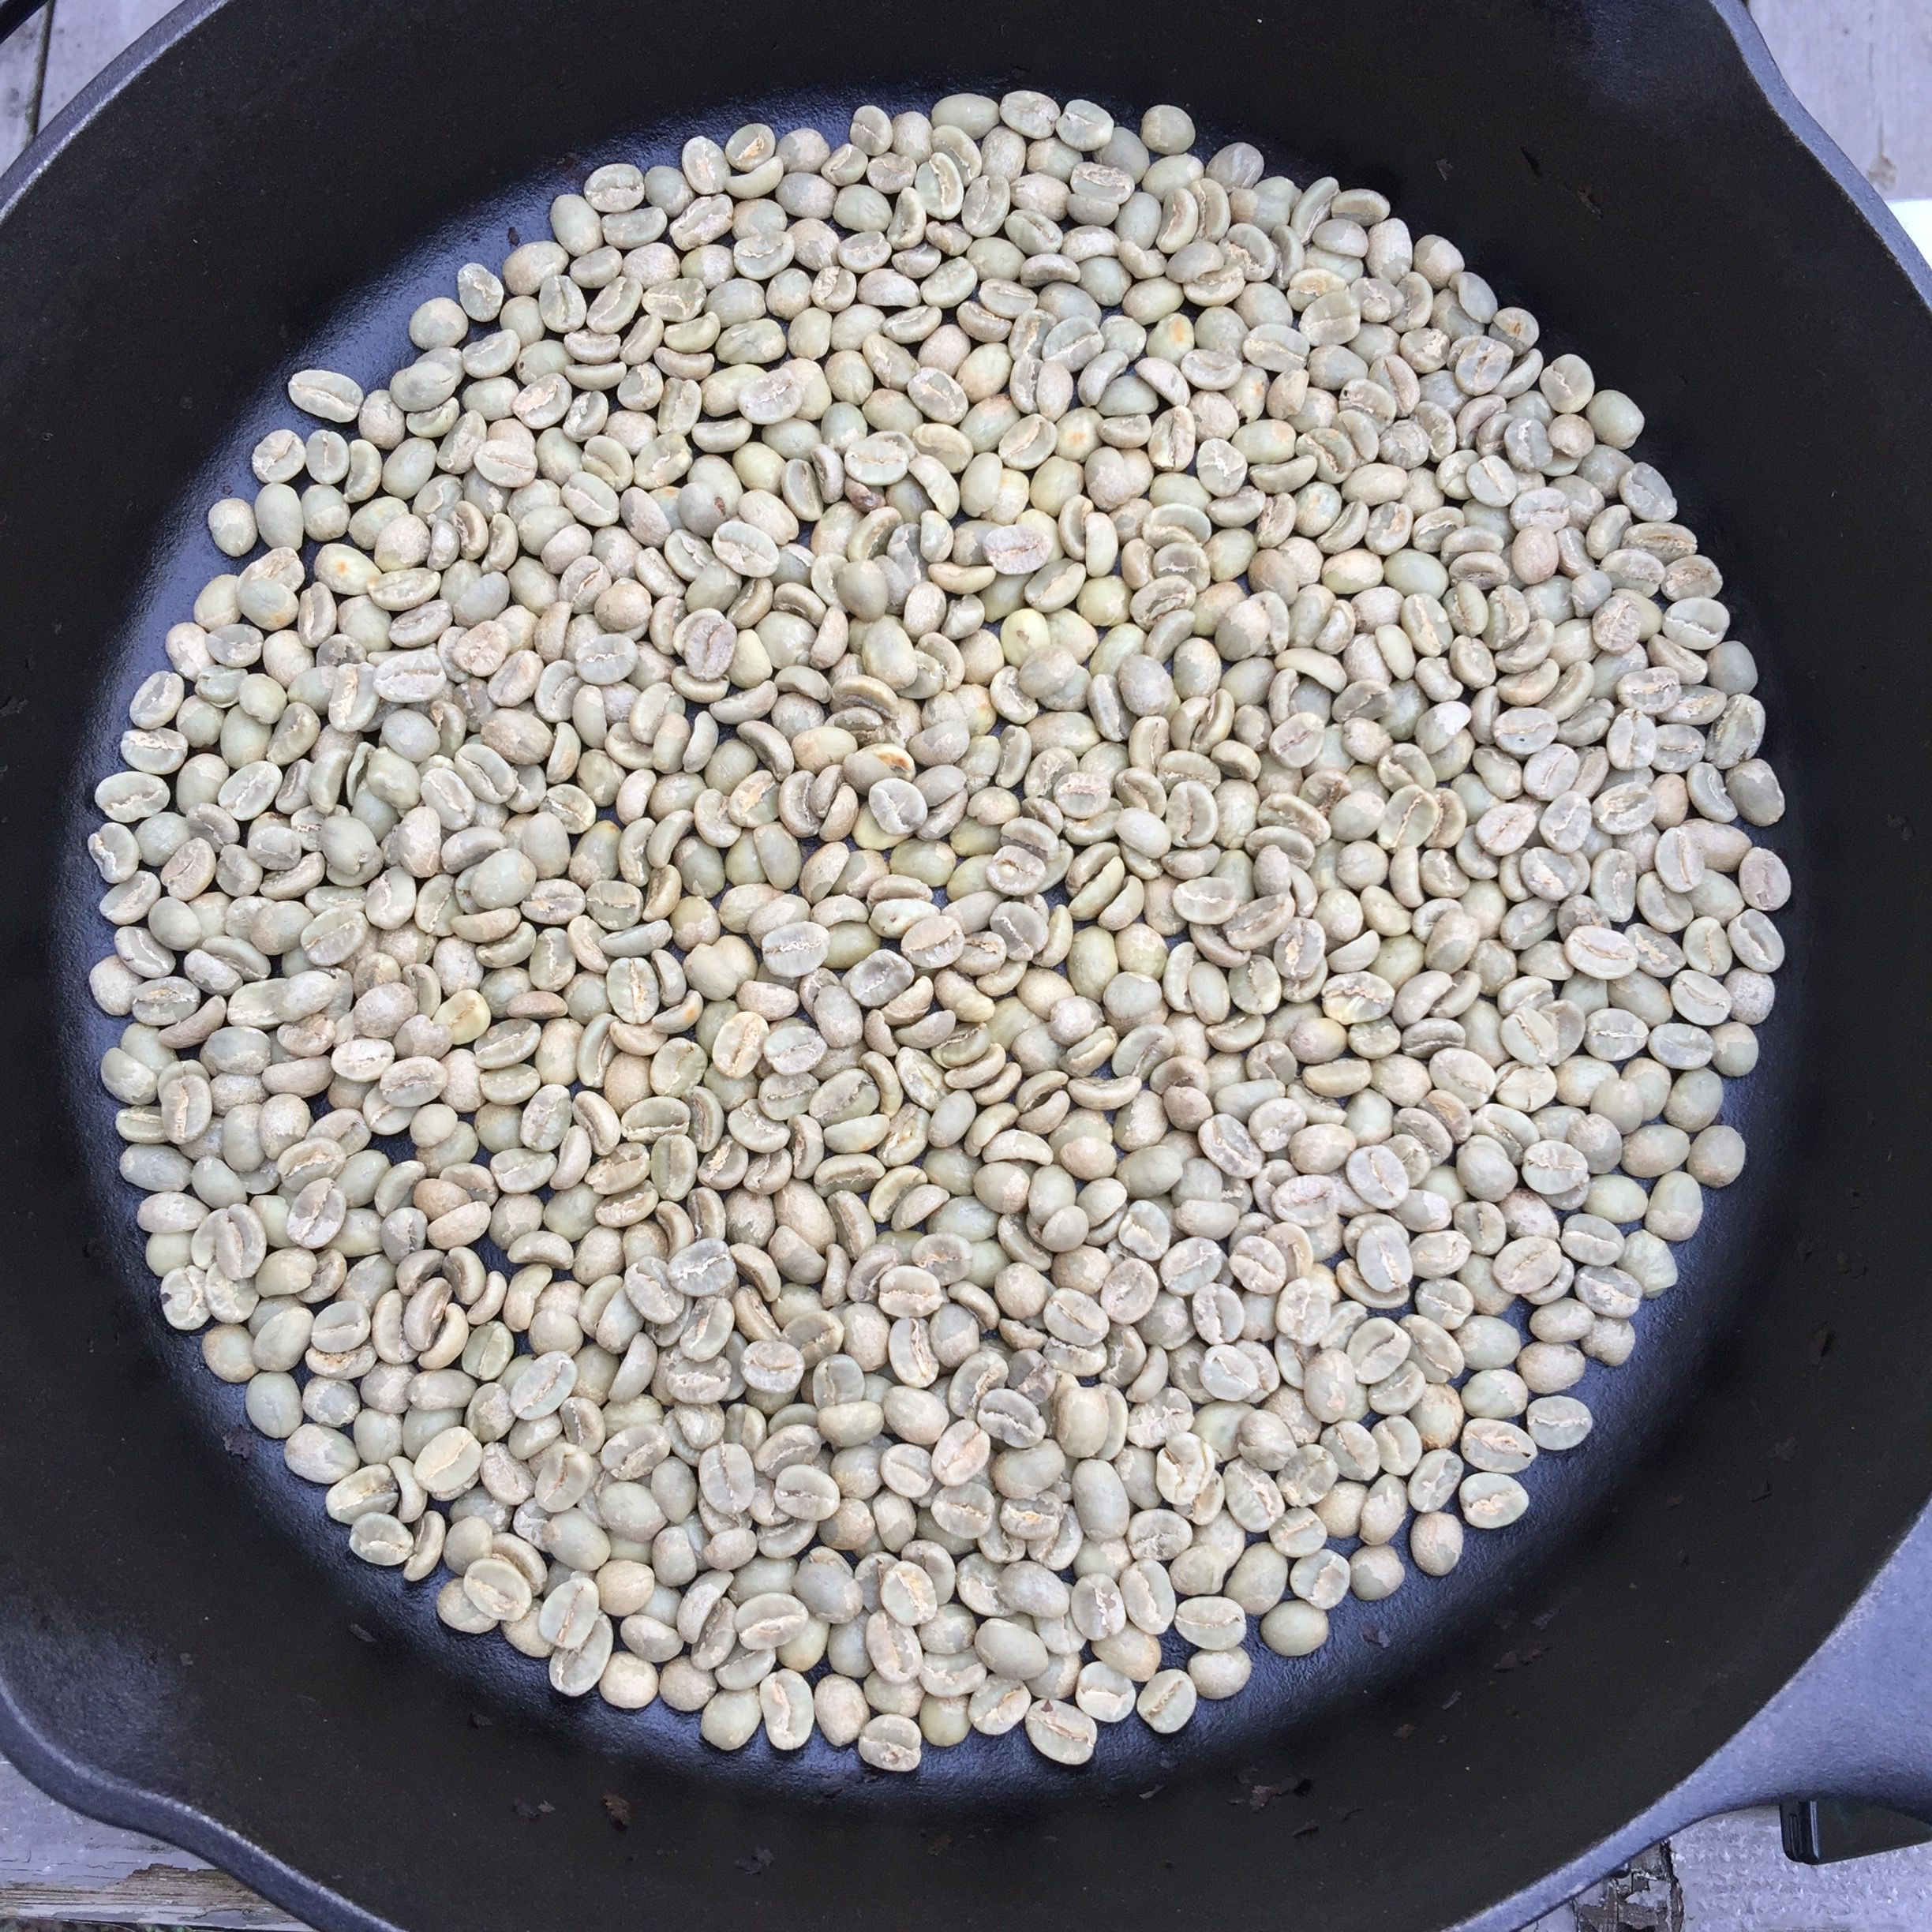 Green coffee beans in a cast iron pan, ready to roast